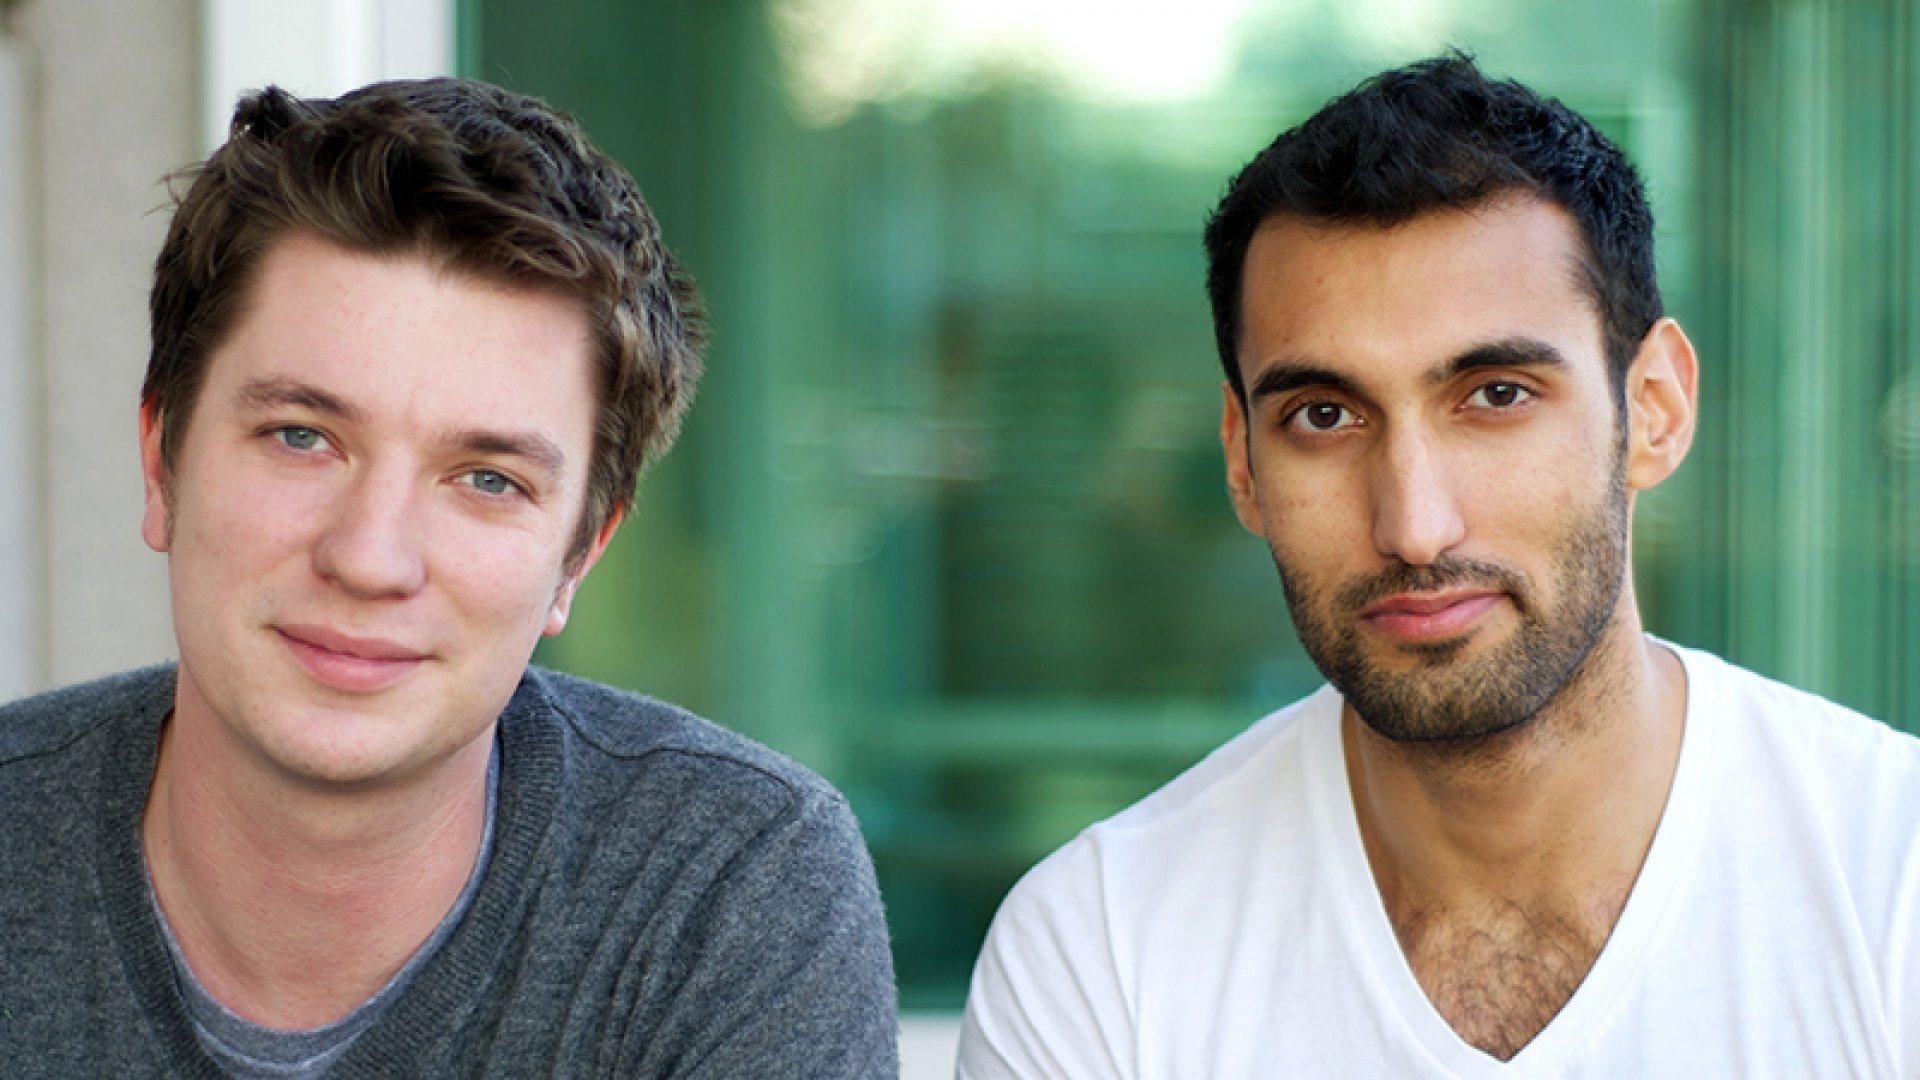 Liam Don and Sam Chaudhary have attracted millions of teachers to their management app, ClassDojo.